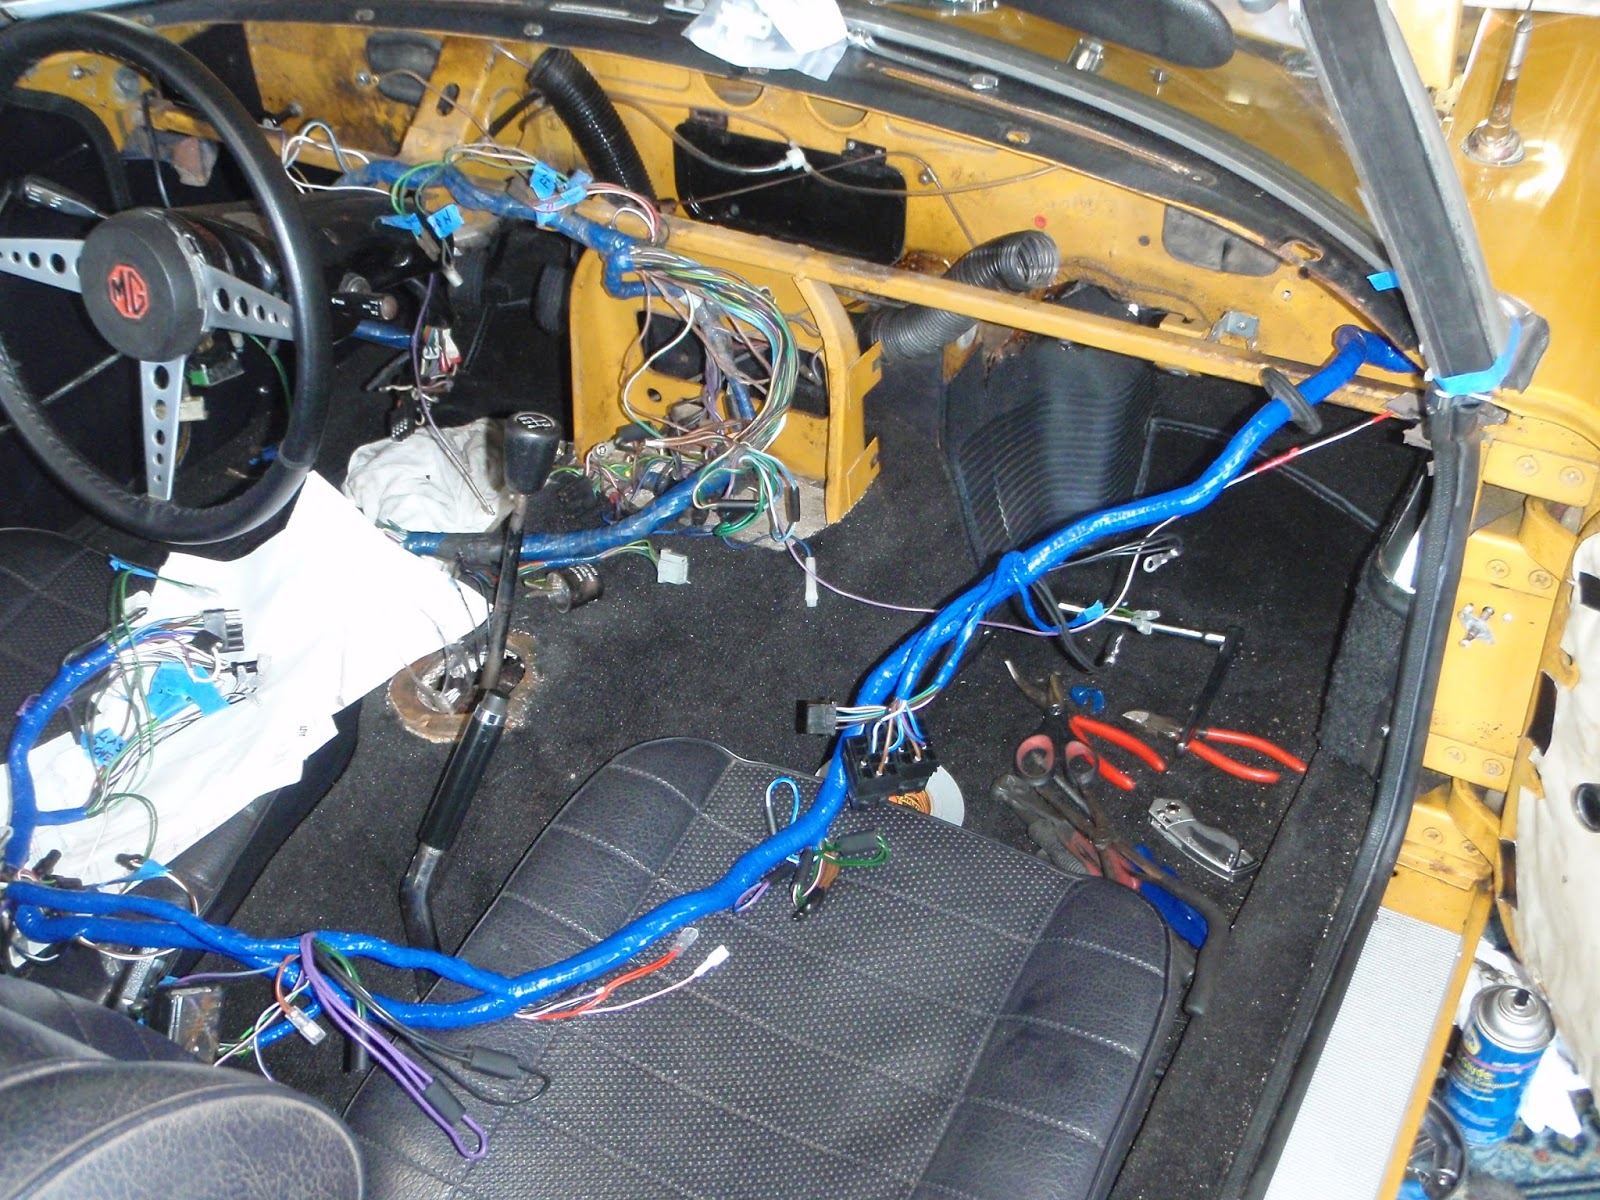 mgb in the garage new wiring harness vinyl top alternator etc 1978 mgb dashboard wiring [ 1600 x 1200 Pixel ]